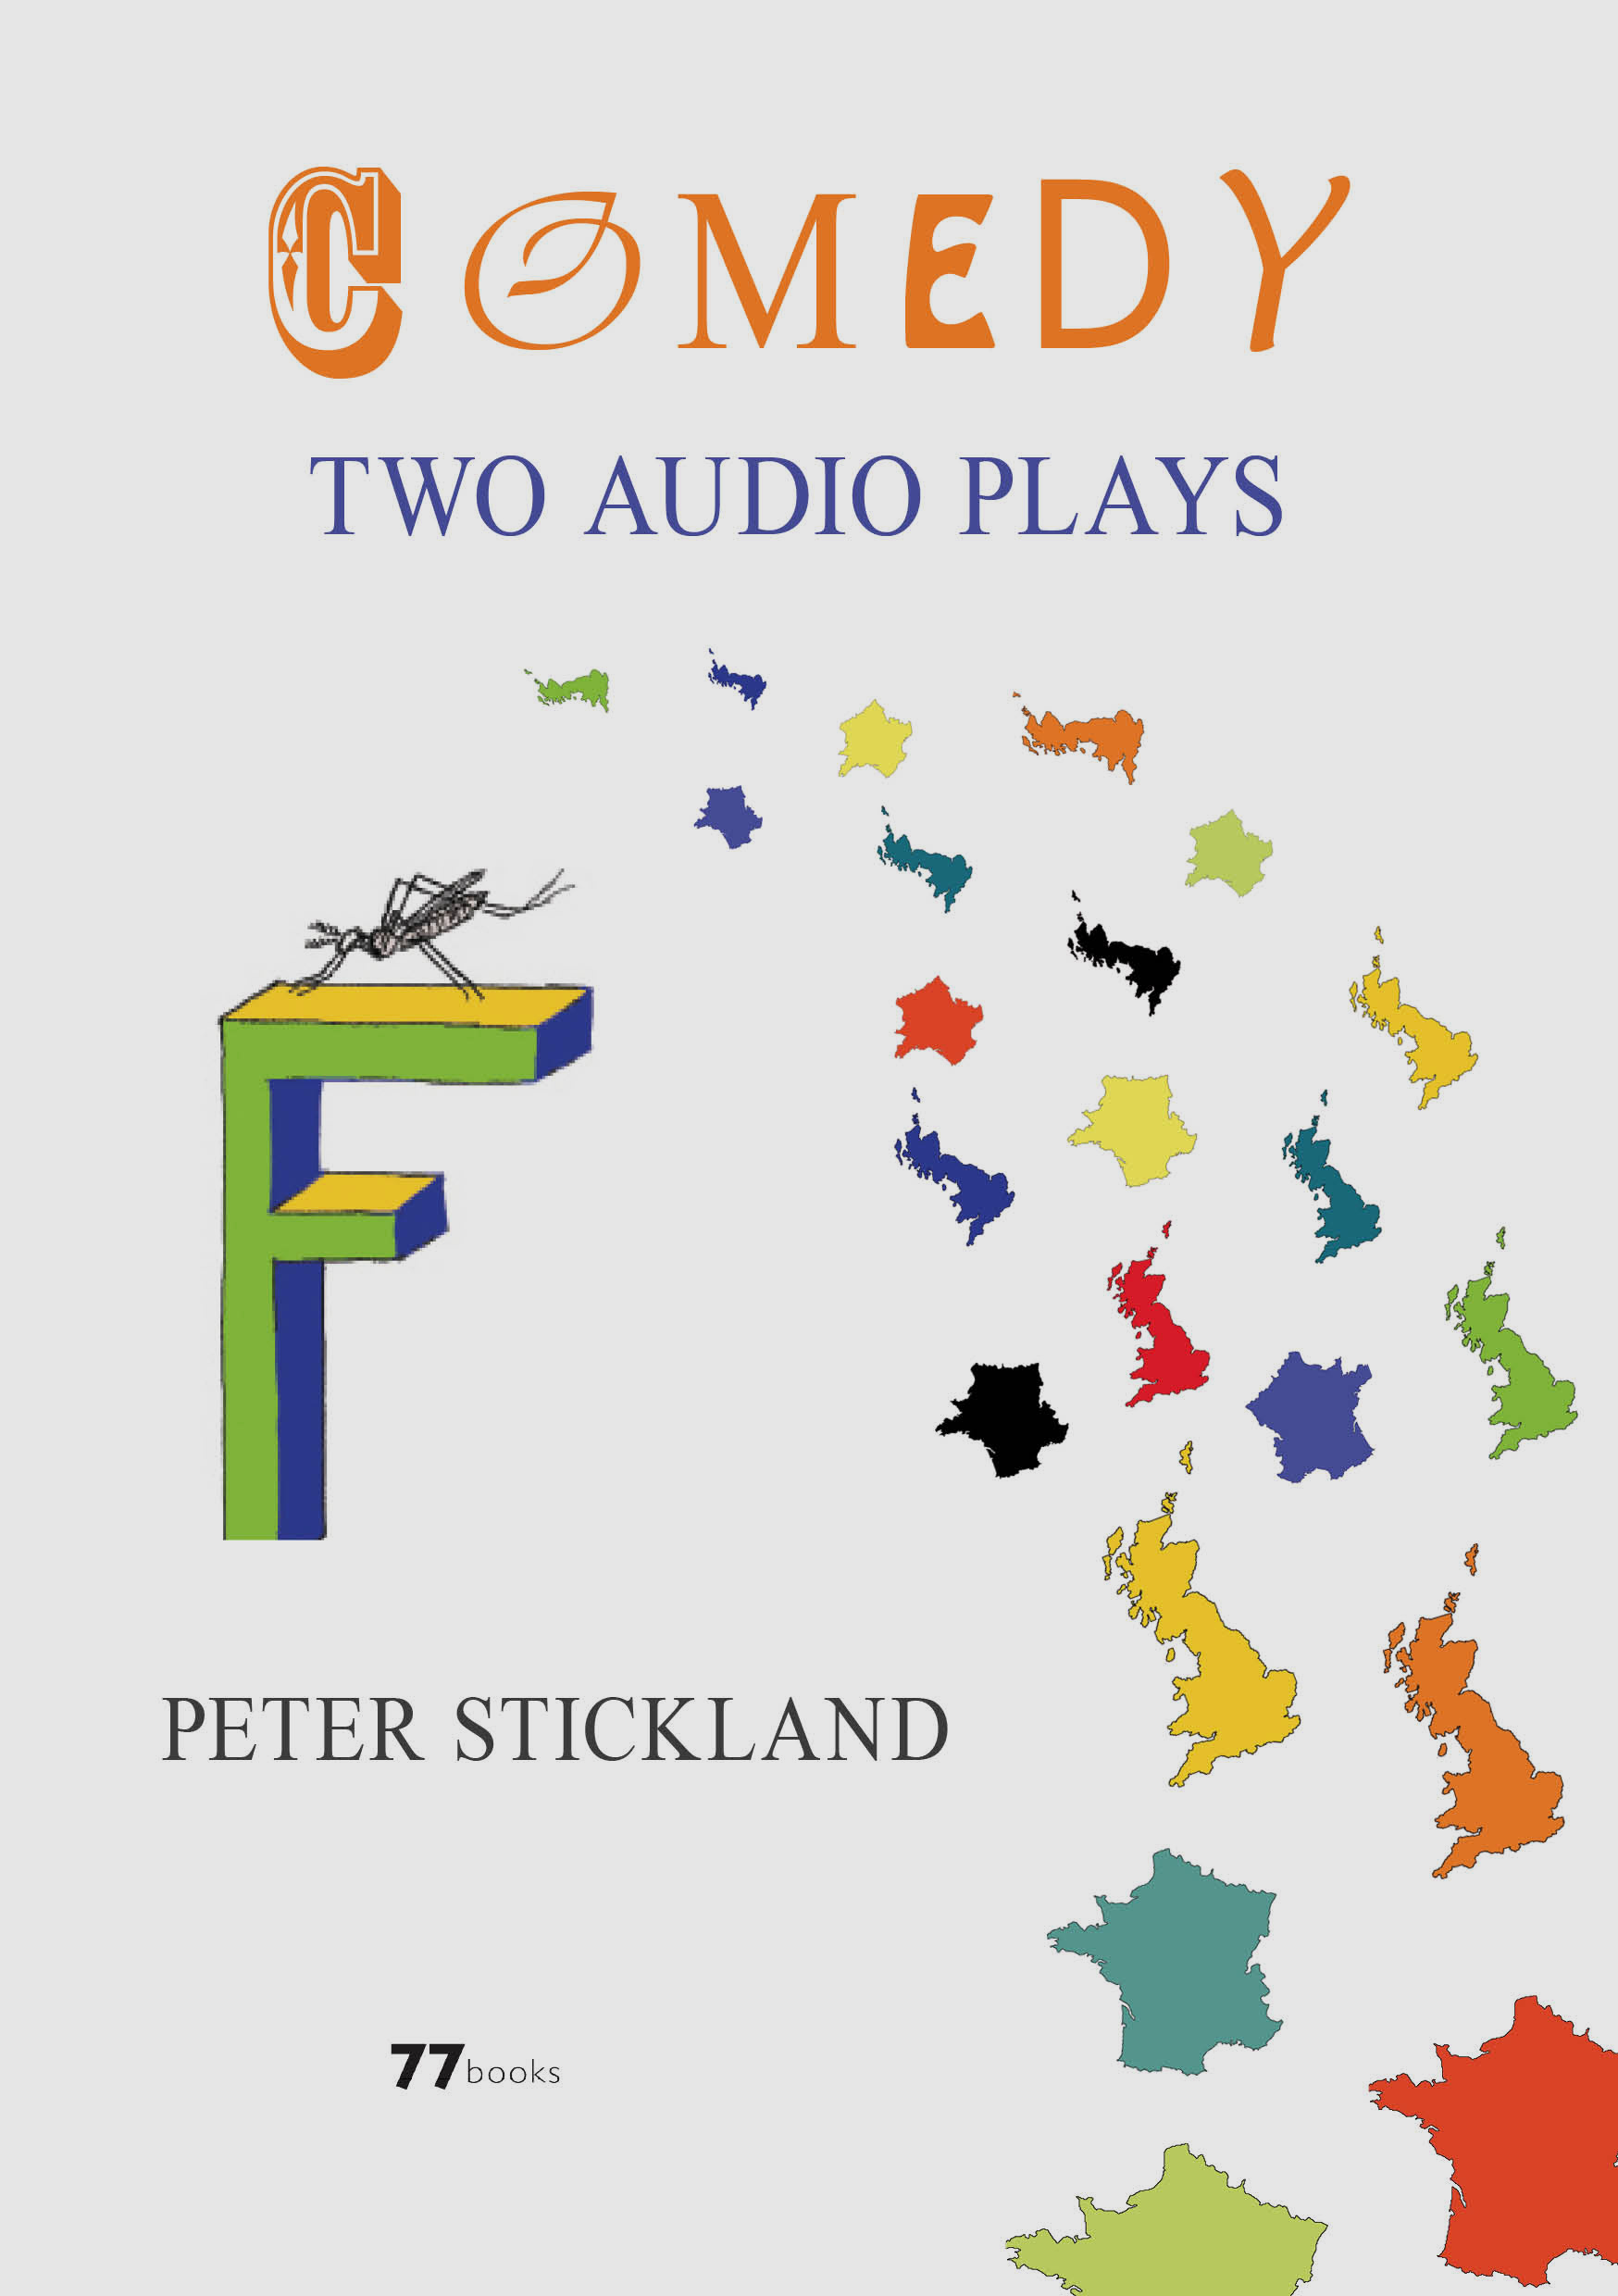 Audio Plays and Songs